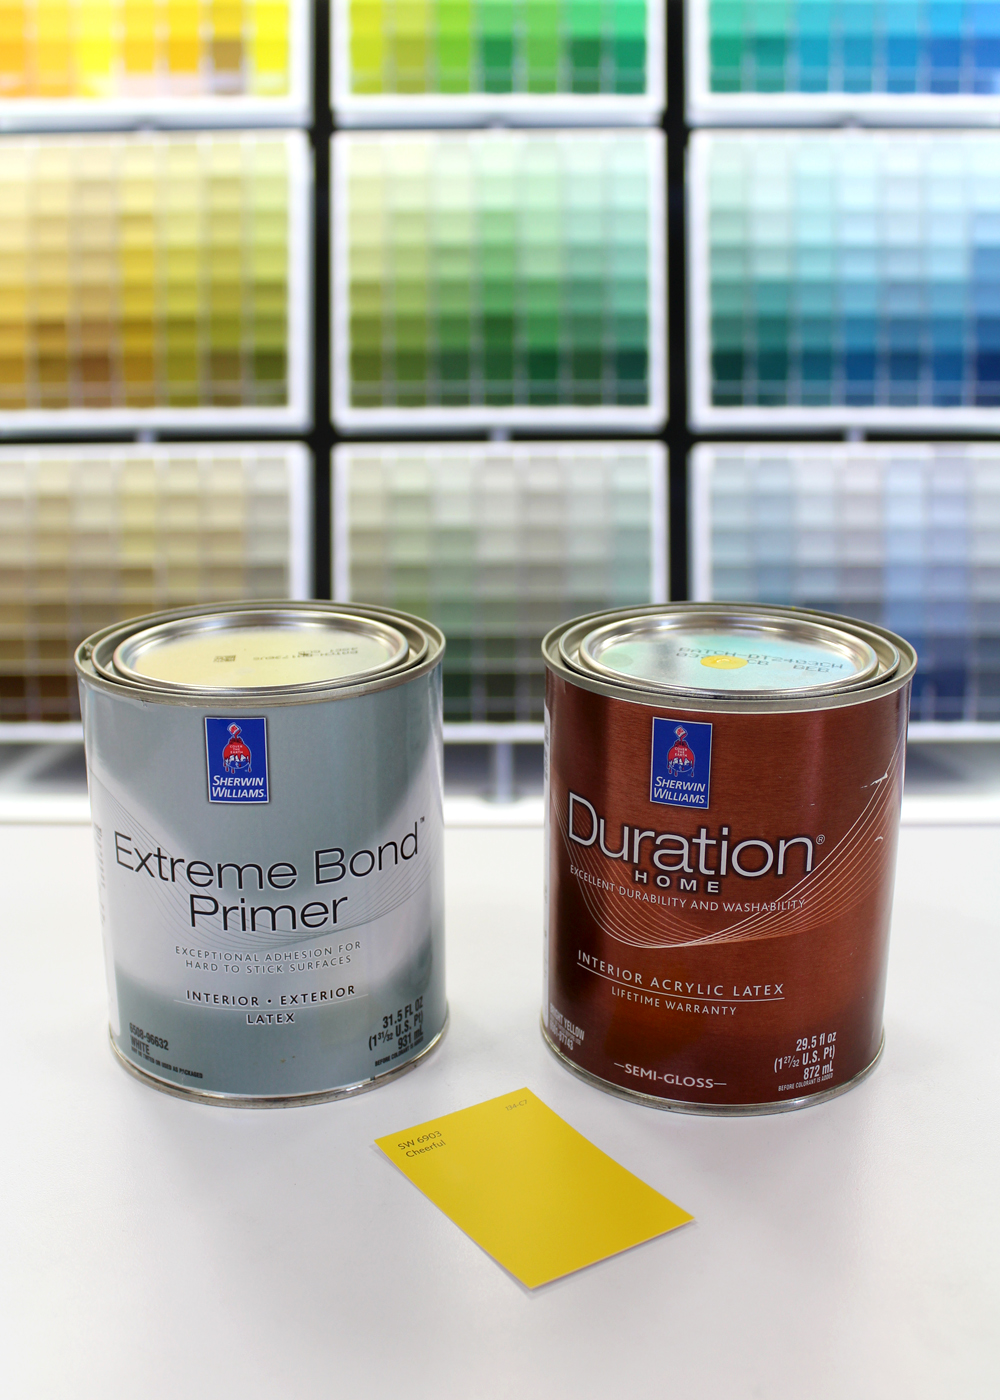 A few reasons why I love my Sherwin-Williams Store!